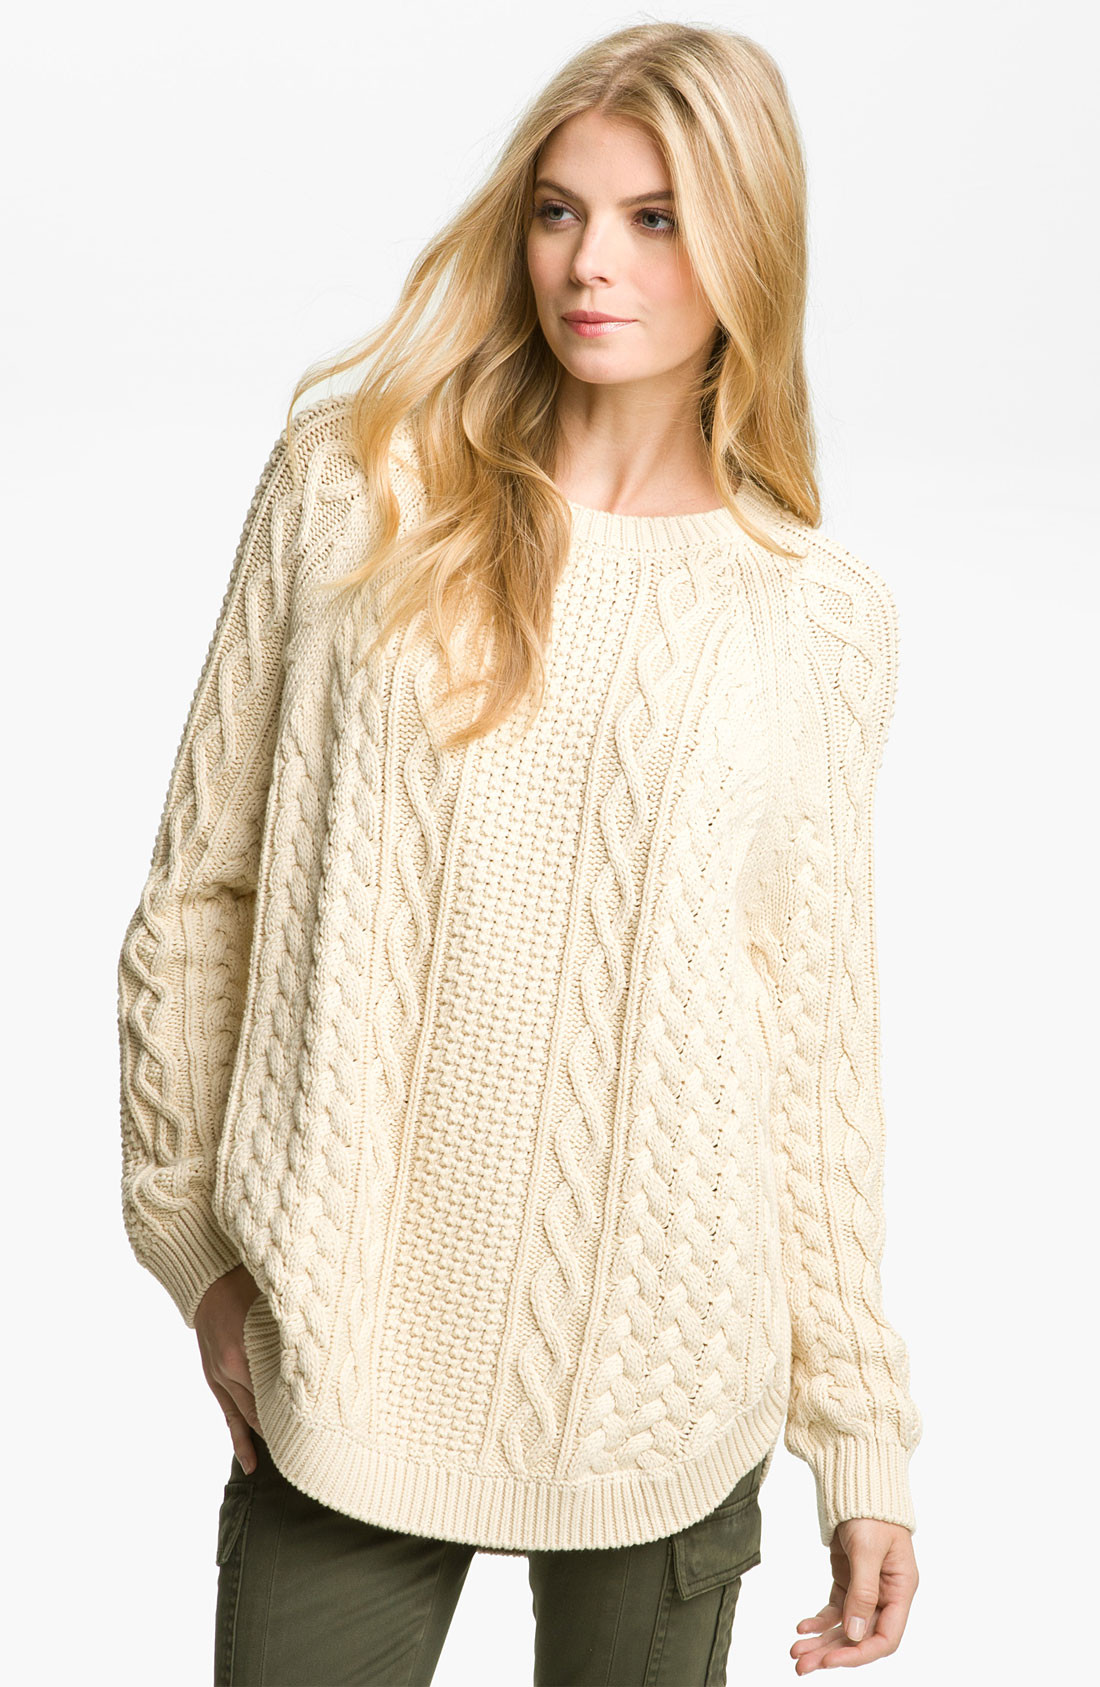 New Fisherman Cable Knit Sweater Cable Knit Cardigan Sweater Of Wonderful 46 Models Cable Knit Cardigan Sweater